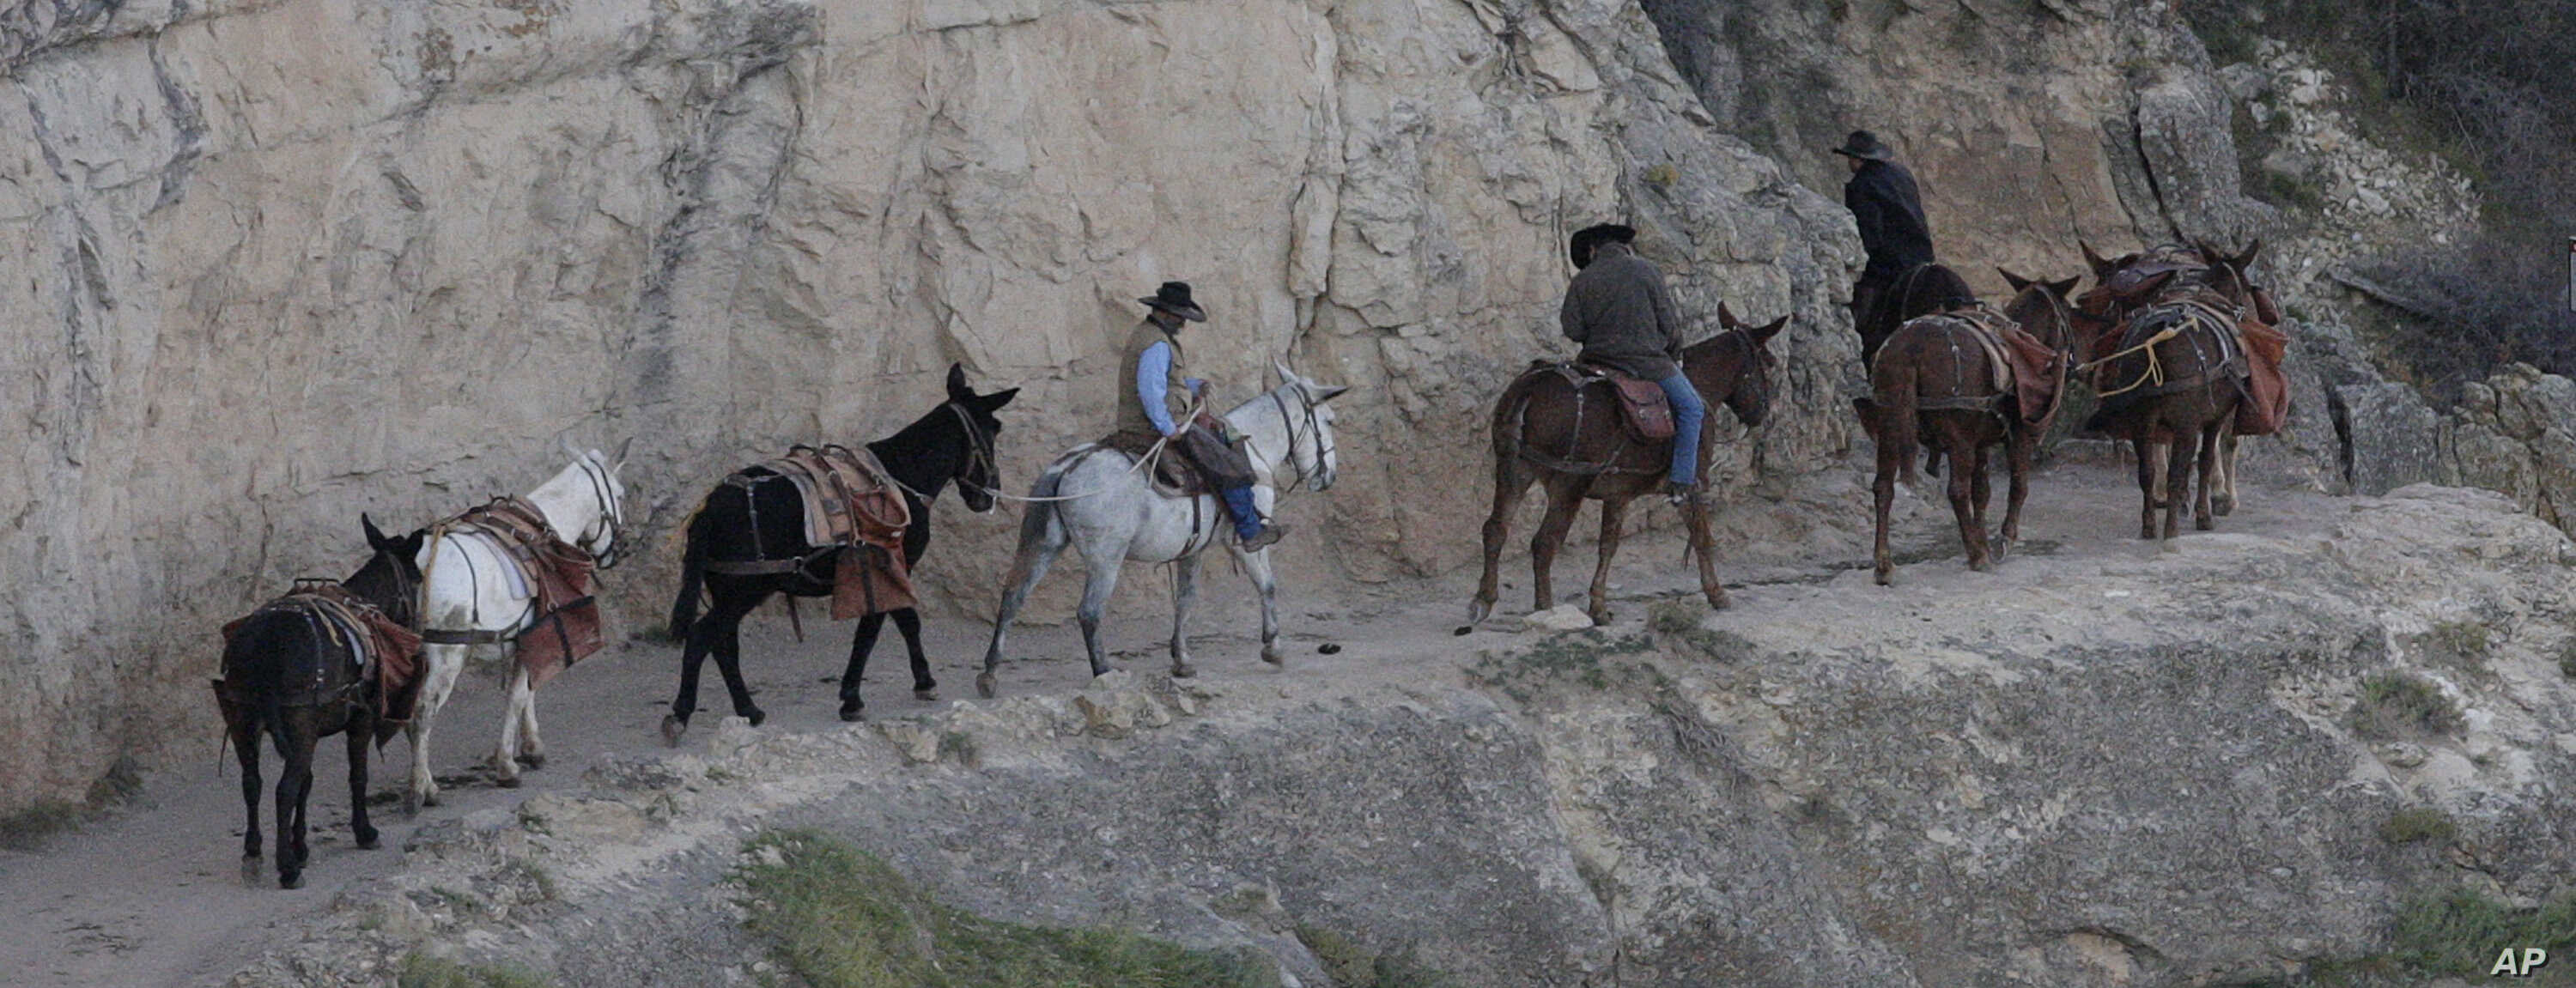 FILE - A mule team walks along the Bright Angel Trail on the South Rim of the Grand Canyon National Park in Ariz., Oct. 22, 2012.